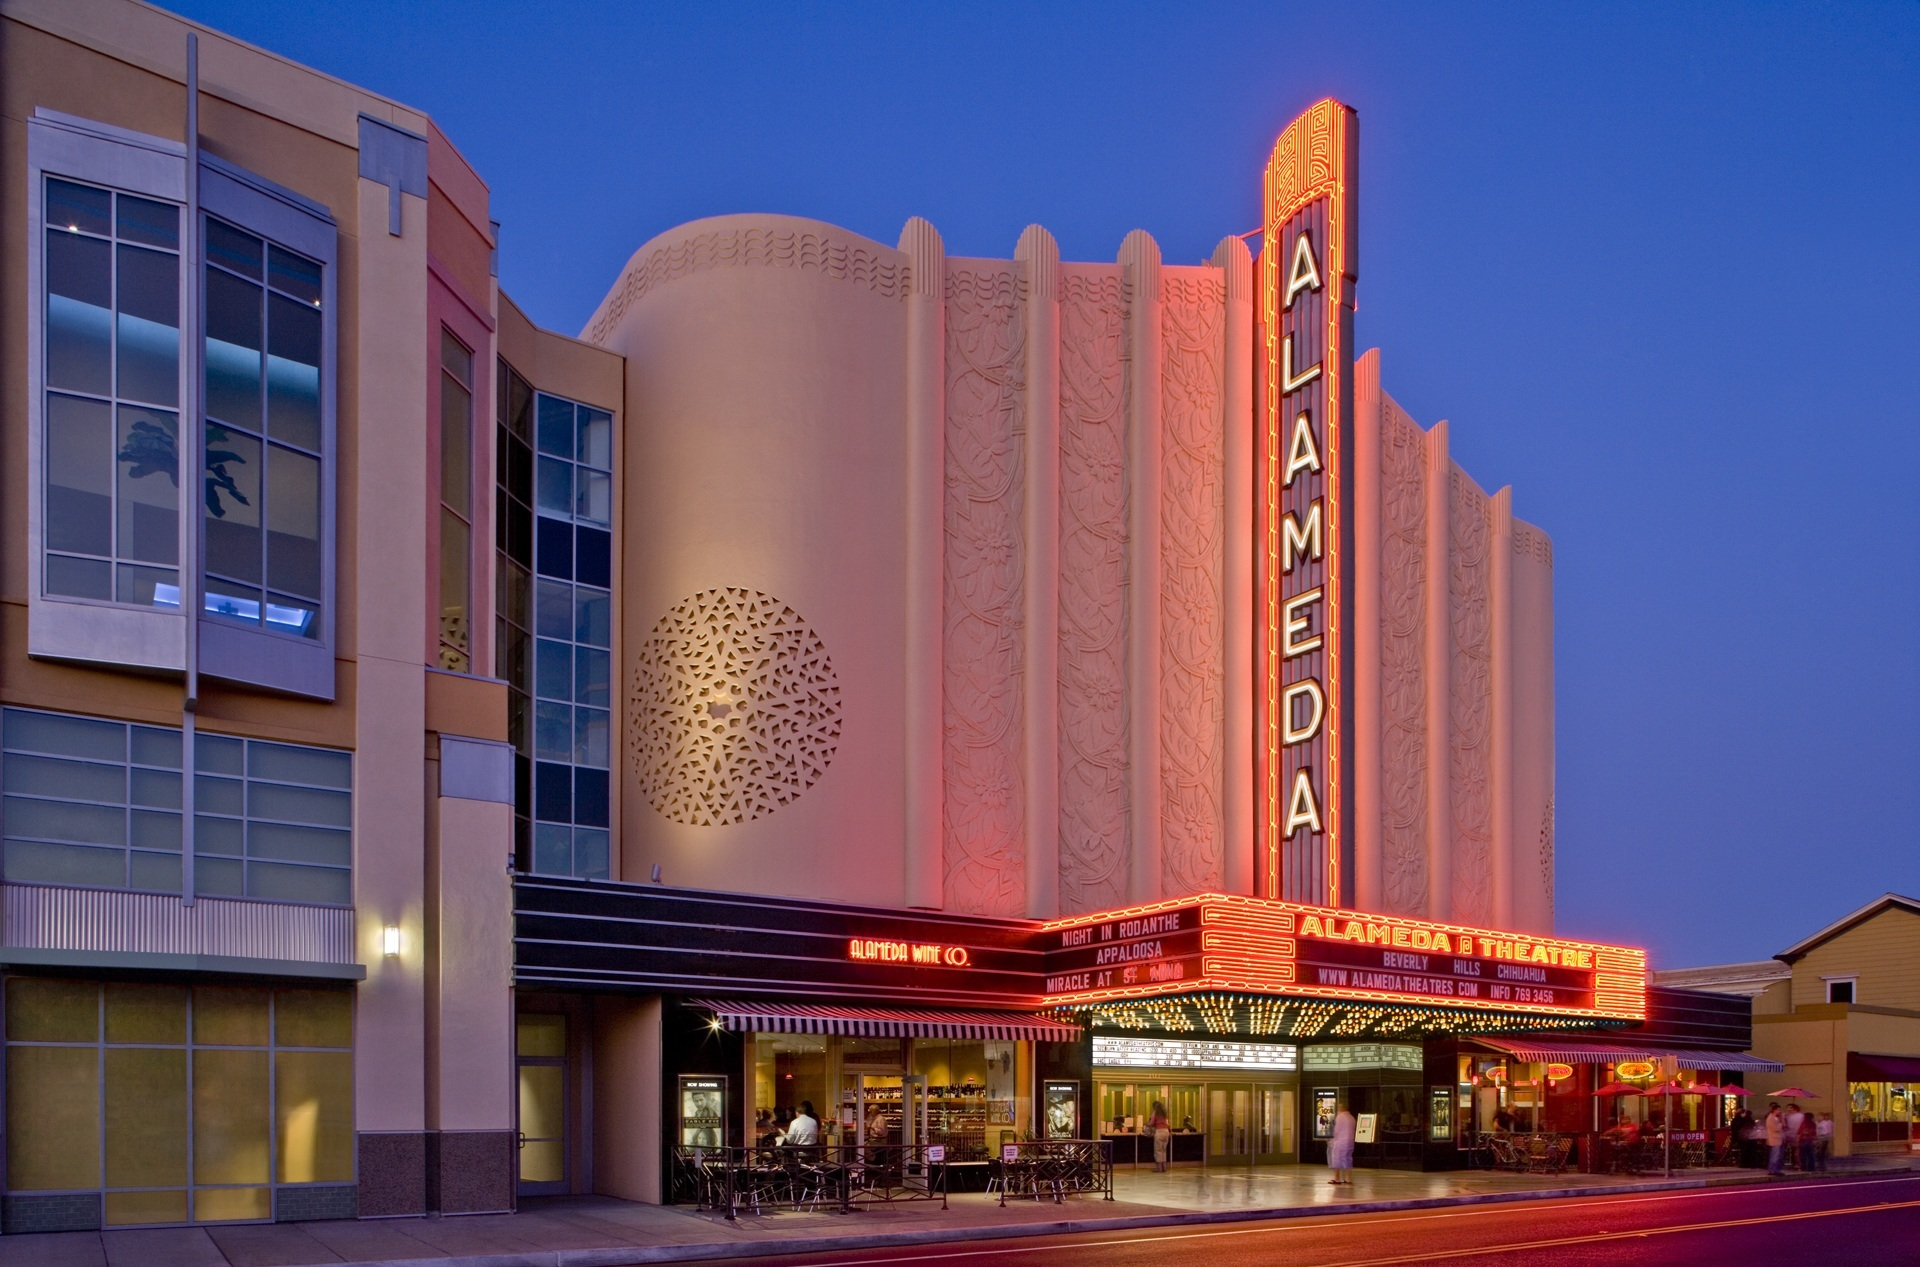 Alameda Theatre & Cineplex - The Bay Area loves restored movie houses, and the Alameda Theater is no exception. This 1932 Art Deco theater was restored in 2008 and has since become a center of entertainment for the area. Catch a flick in the historic landmark and enjoy food delivered straight to your theater seats from Cinema Grill.2317 Central Ave., Alamedaalamedatheatres.com